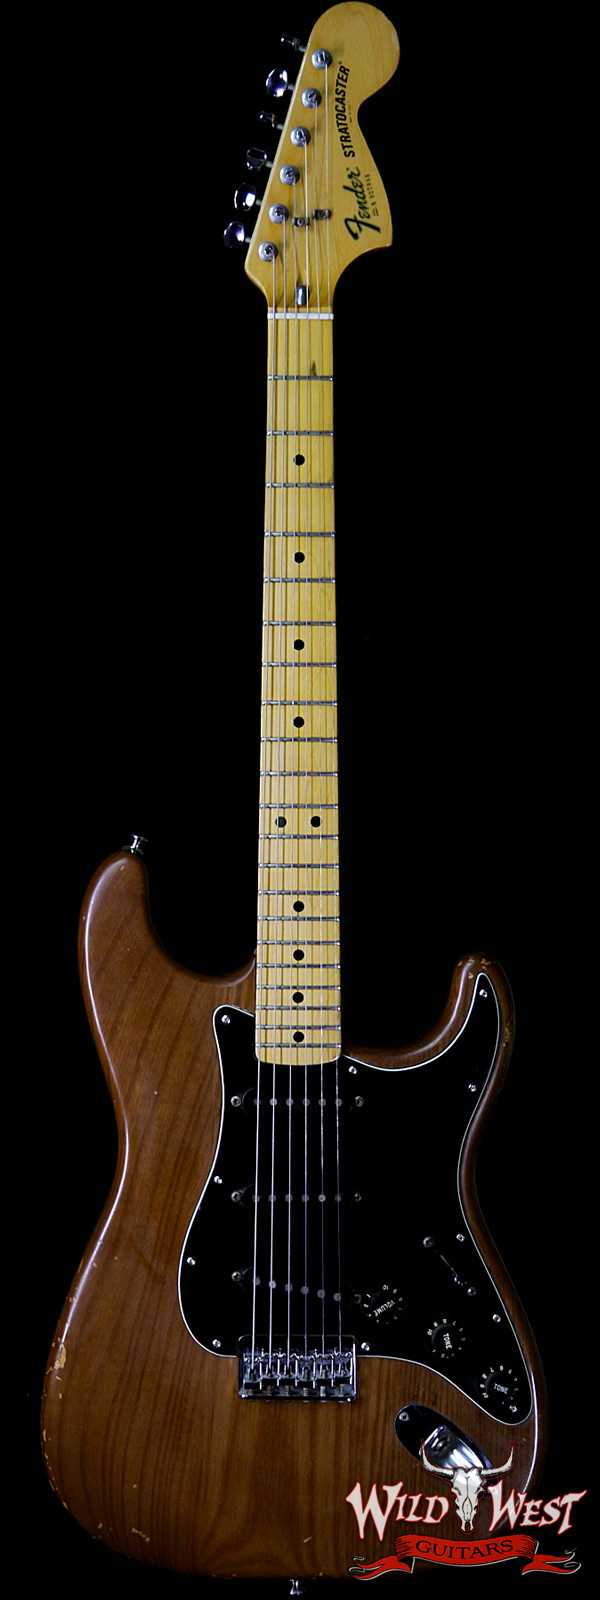 1979 Fender USA Stratocaster Hardtail Maple Neck Fat Head Mocha Brown